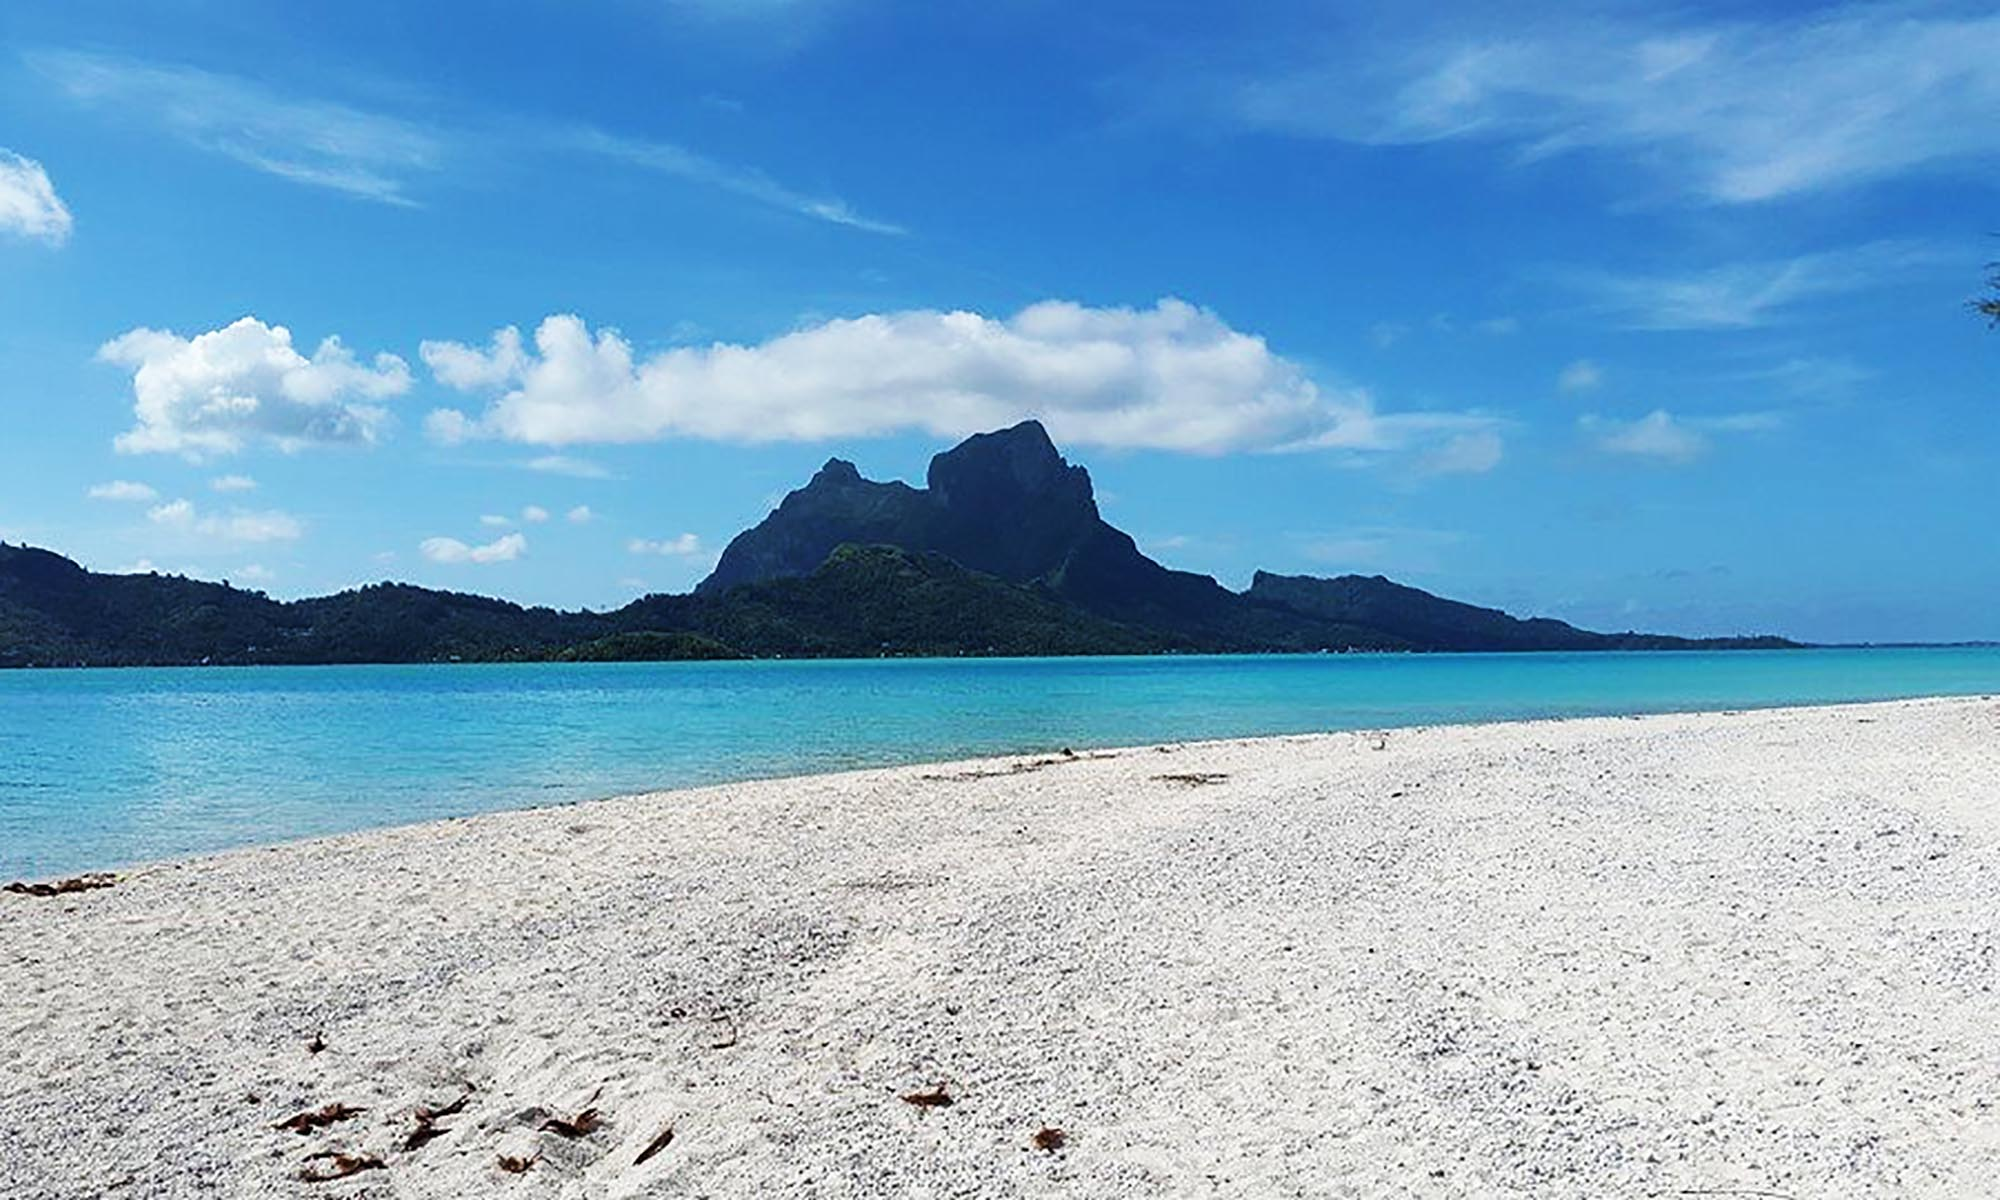 Raanui Tours, Full-Day Bora Bora Lagoon Cruise & Motu Tahitian Barbecue - View from Motu Tapu